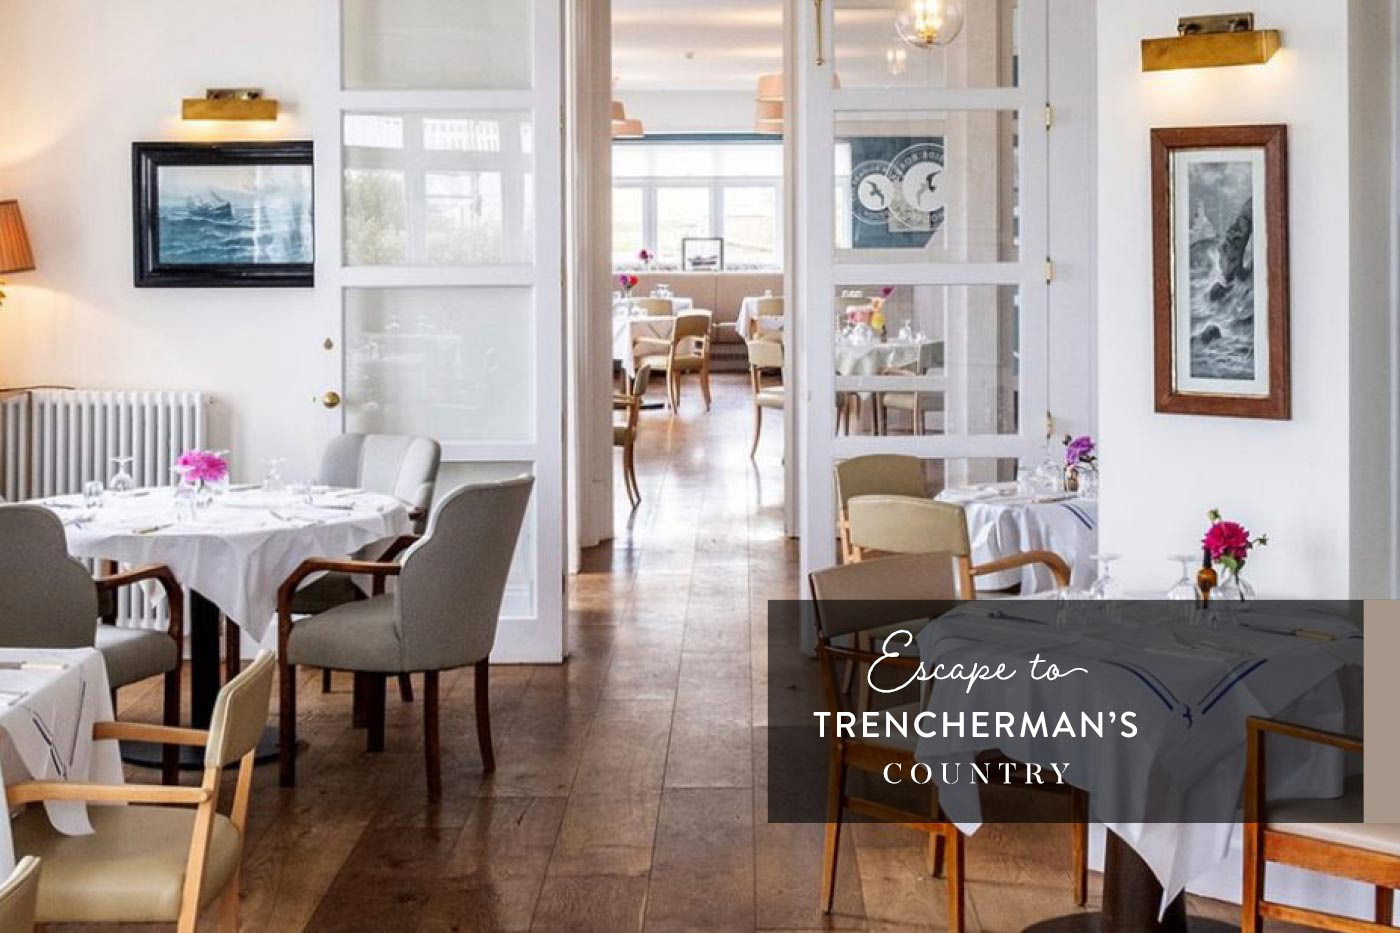 Escape to Trencherman's Country, Seaside Boarding House